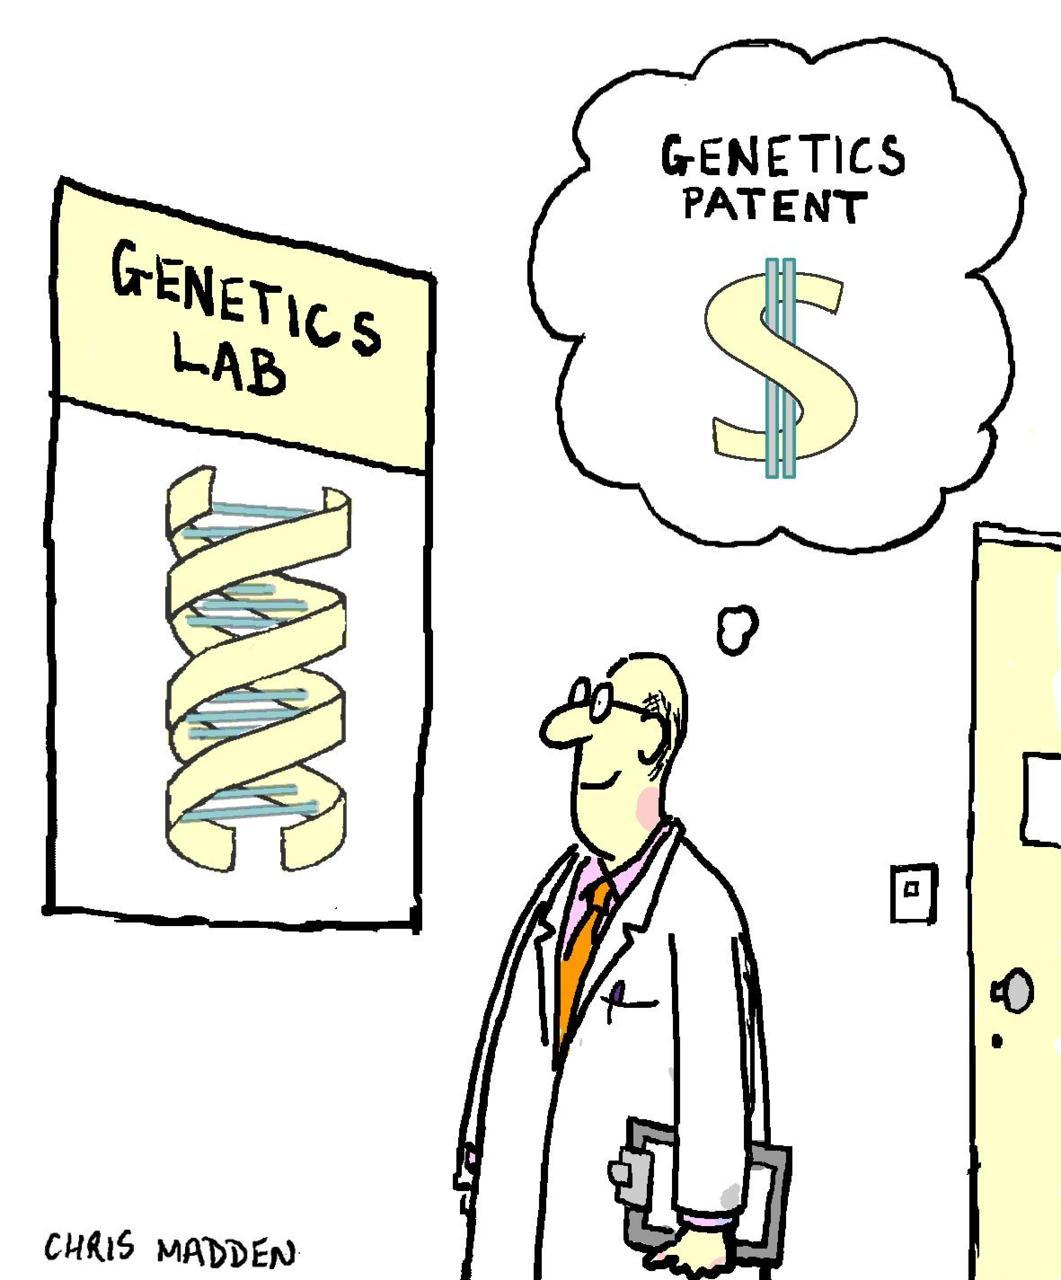 "A federal appeals court upheld Myriad Genetics' right to patent human genes this week. The ACLU had sued to block this, and although they won a previous case, it looks like the ability to patent (and preserve intellectual property rights money) on a piece of nature might go to the Supreme Court. I think the cartoon above and the following quote sum up my views on the subject quite nicely:  ""Human DNA is not a manufactured invention, but a natural entity like air or water. To claim ownership of genetic information is to unnecessarily block the free exchange of ideas.""  (via The Scientist)"